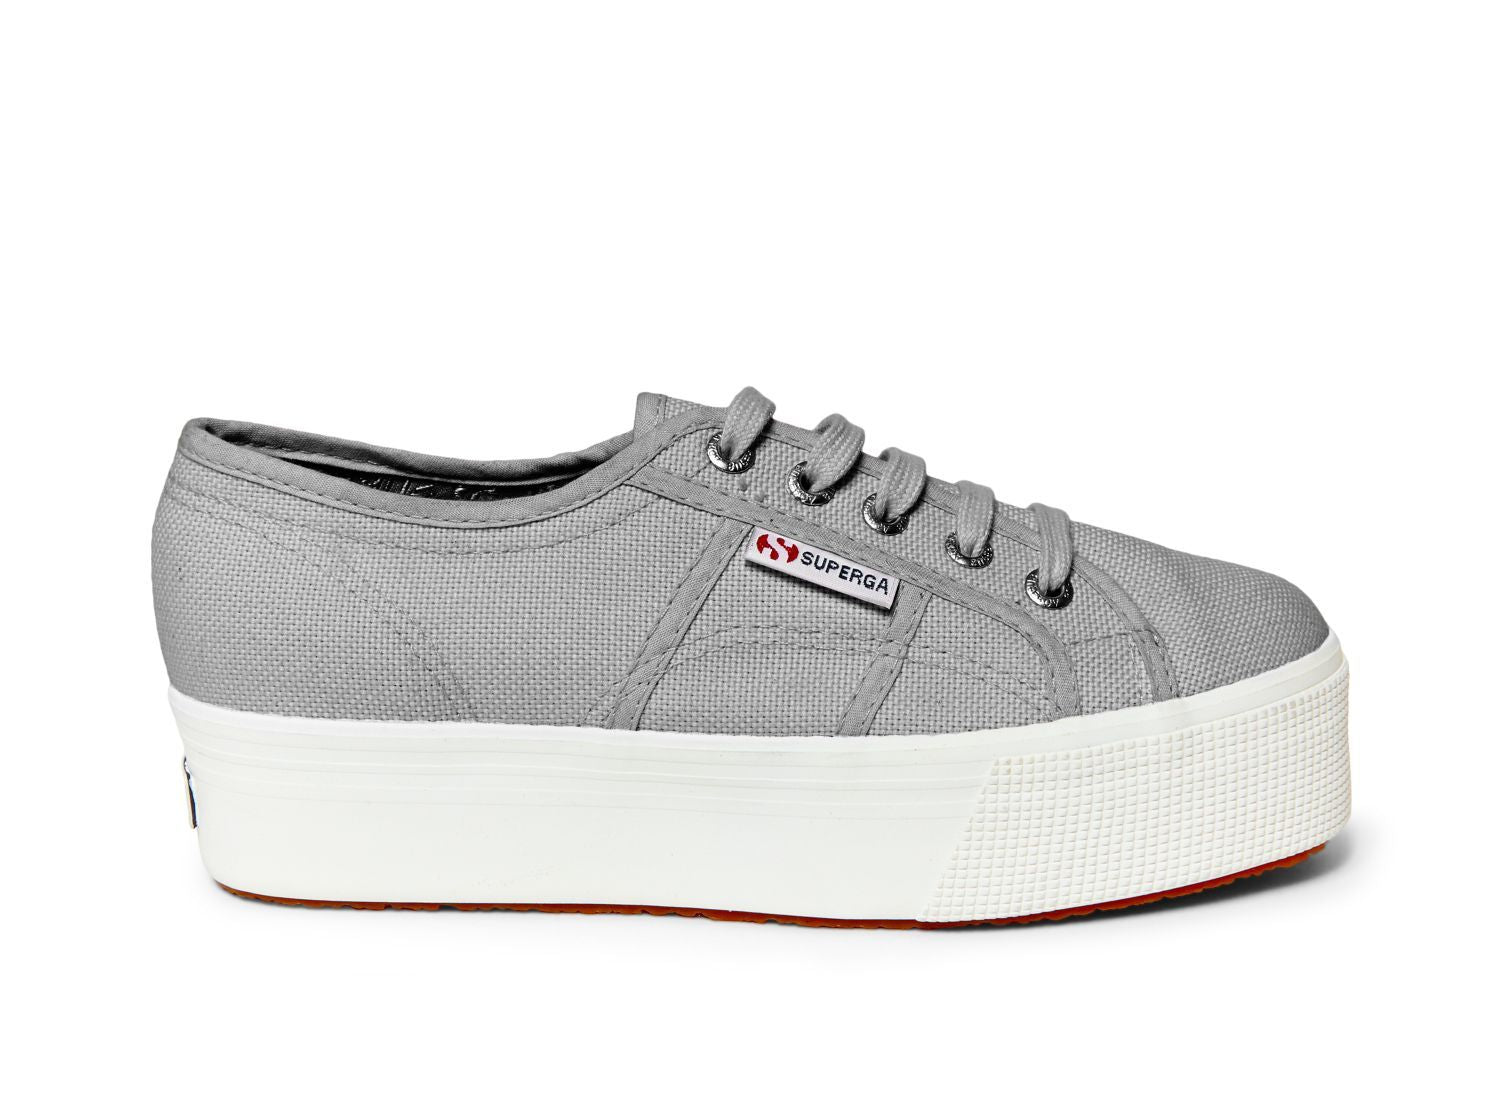 Superga - The Classic Platform Lace Sneaker in Grey Sage